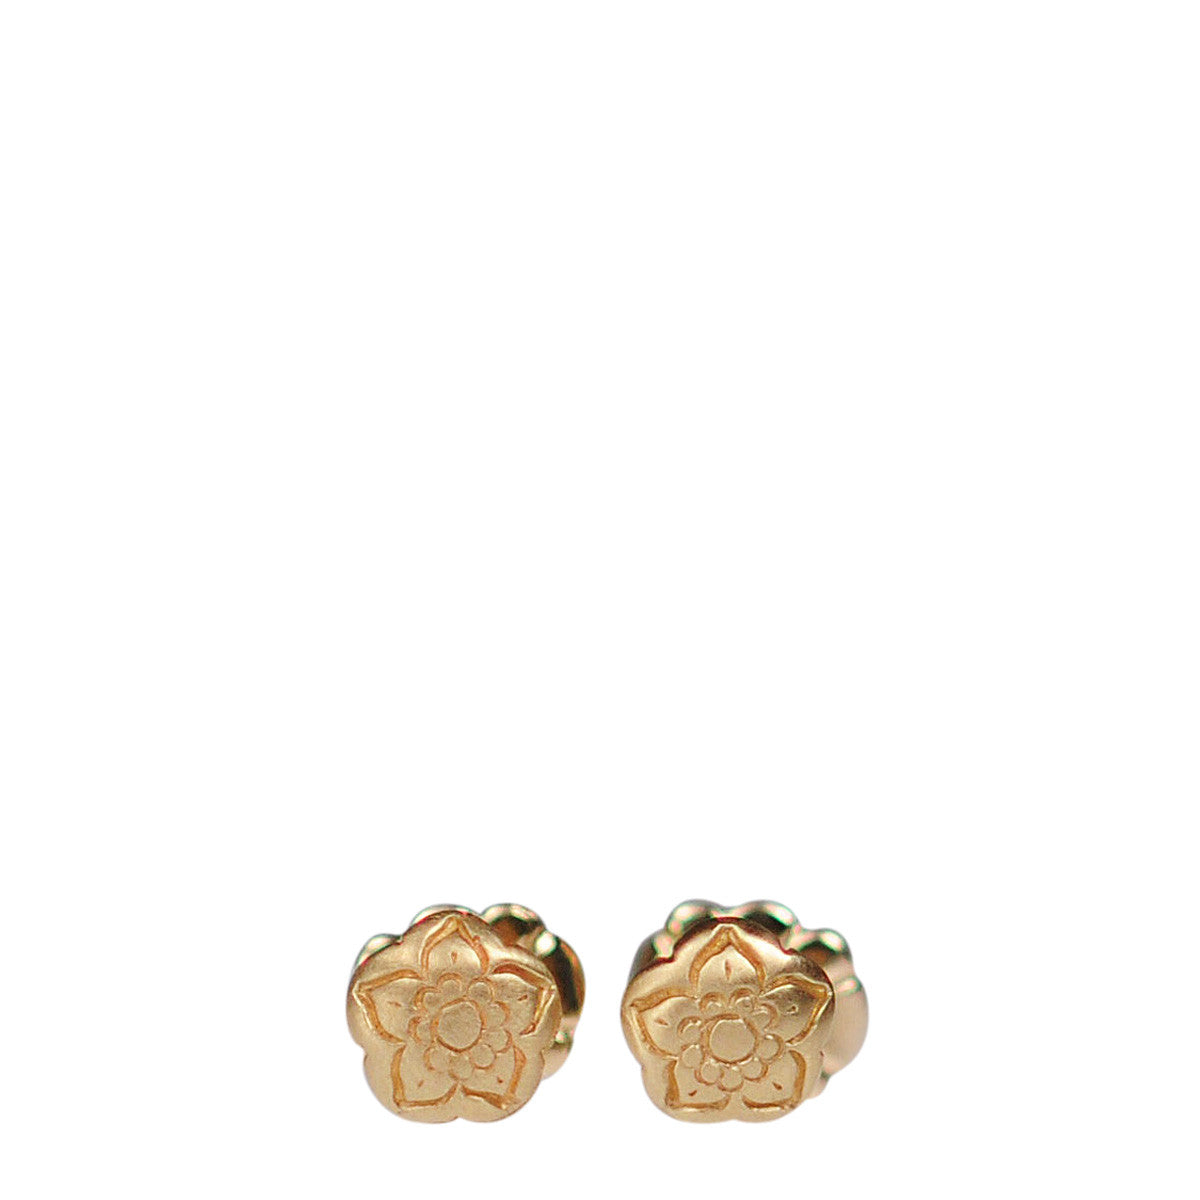 kalaki earrings riot products earring in kalani luana gold match styles mix malie